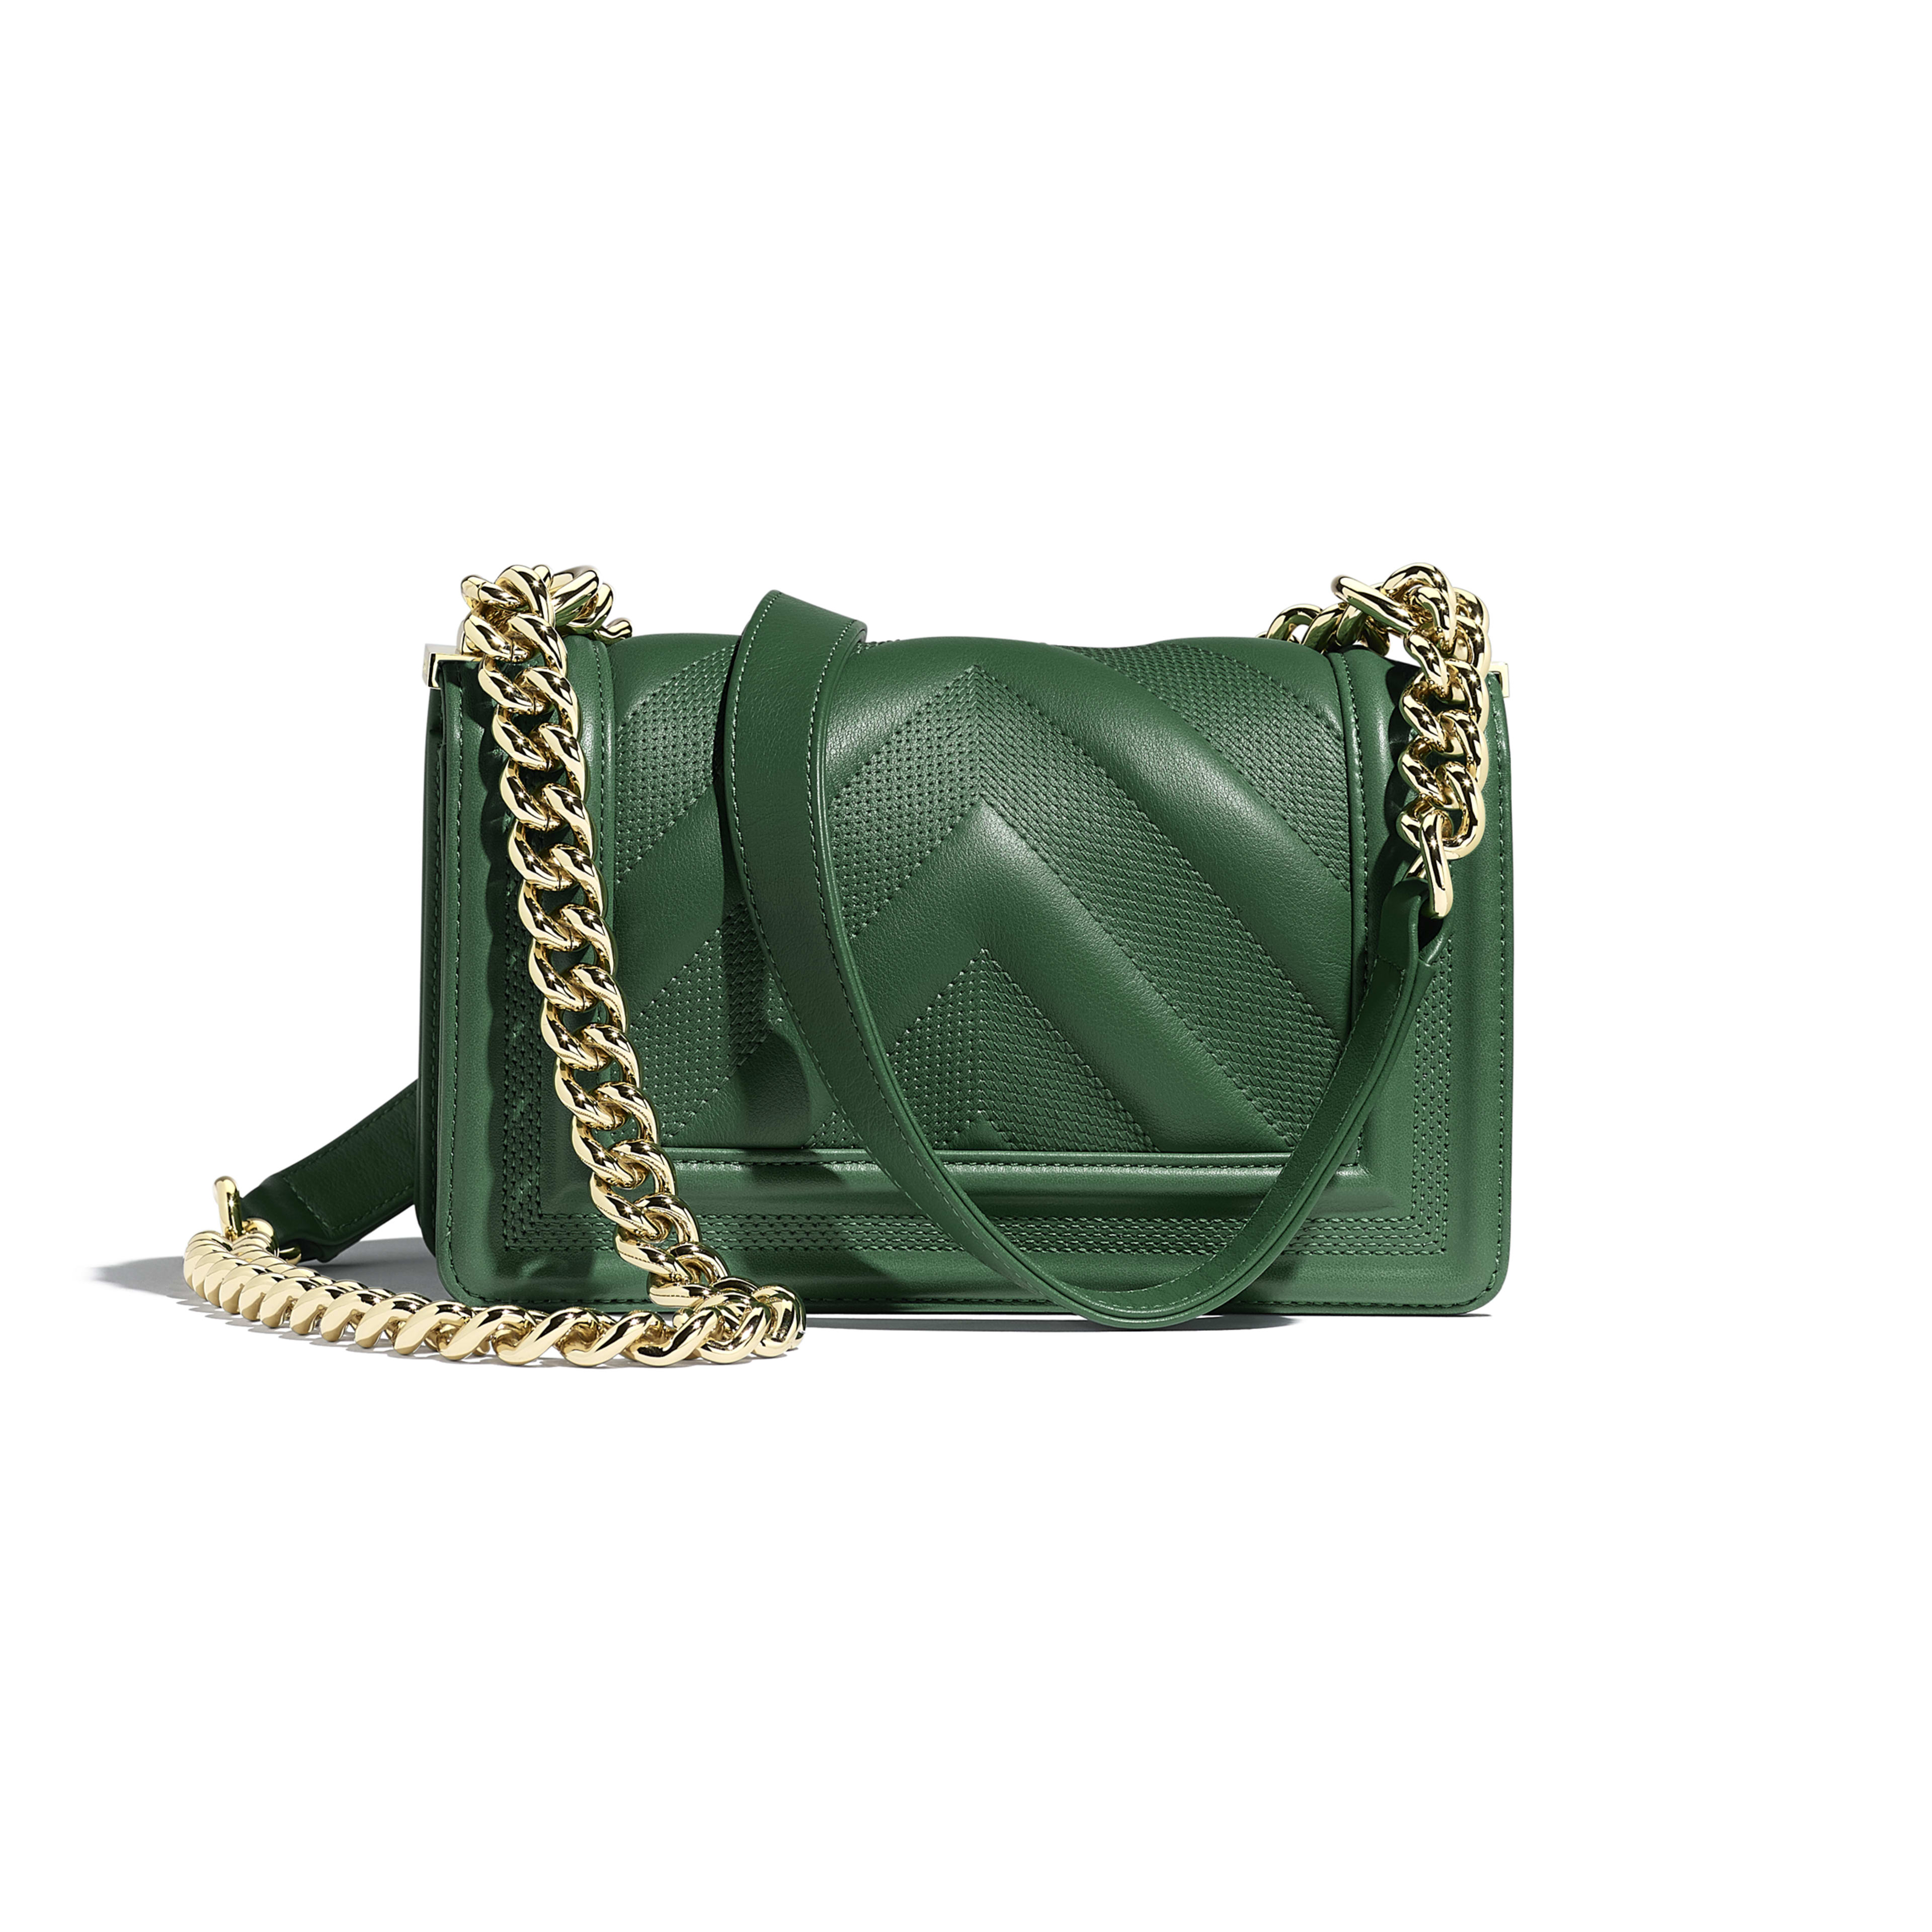 Small BOY CHANEL Handbag - Green - Calfskin & Gold-Tone Metal - Alternative view - see full sized version